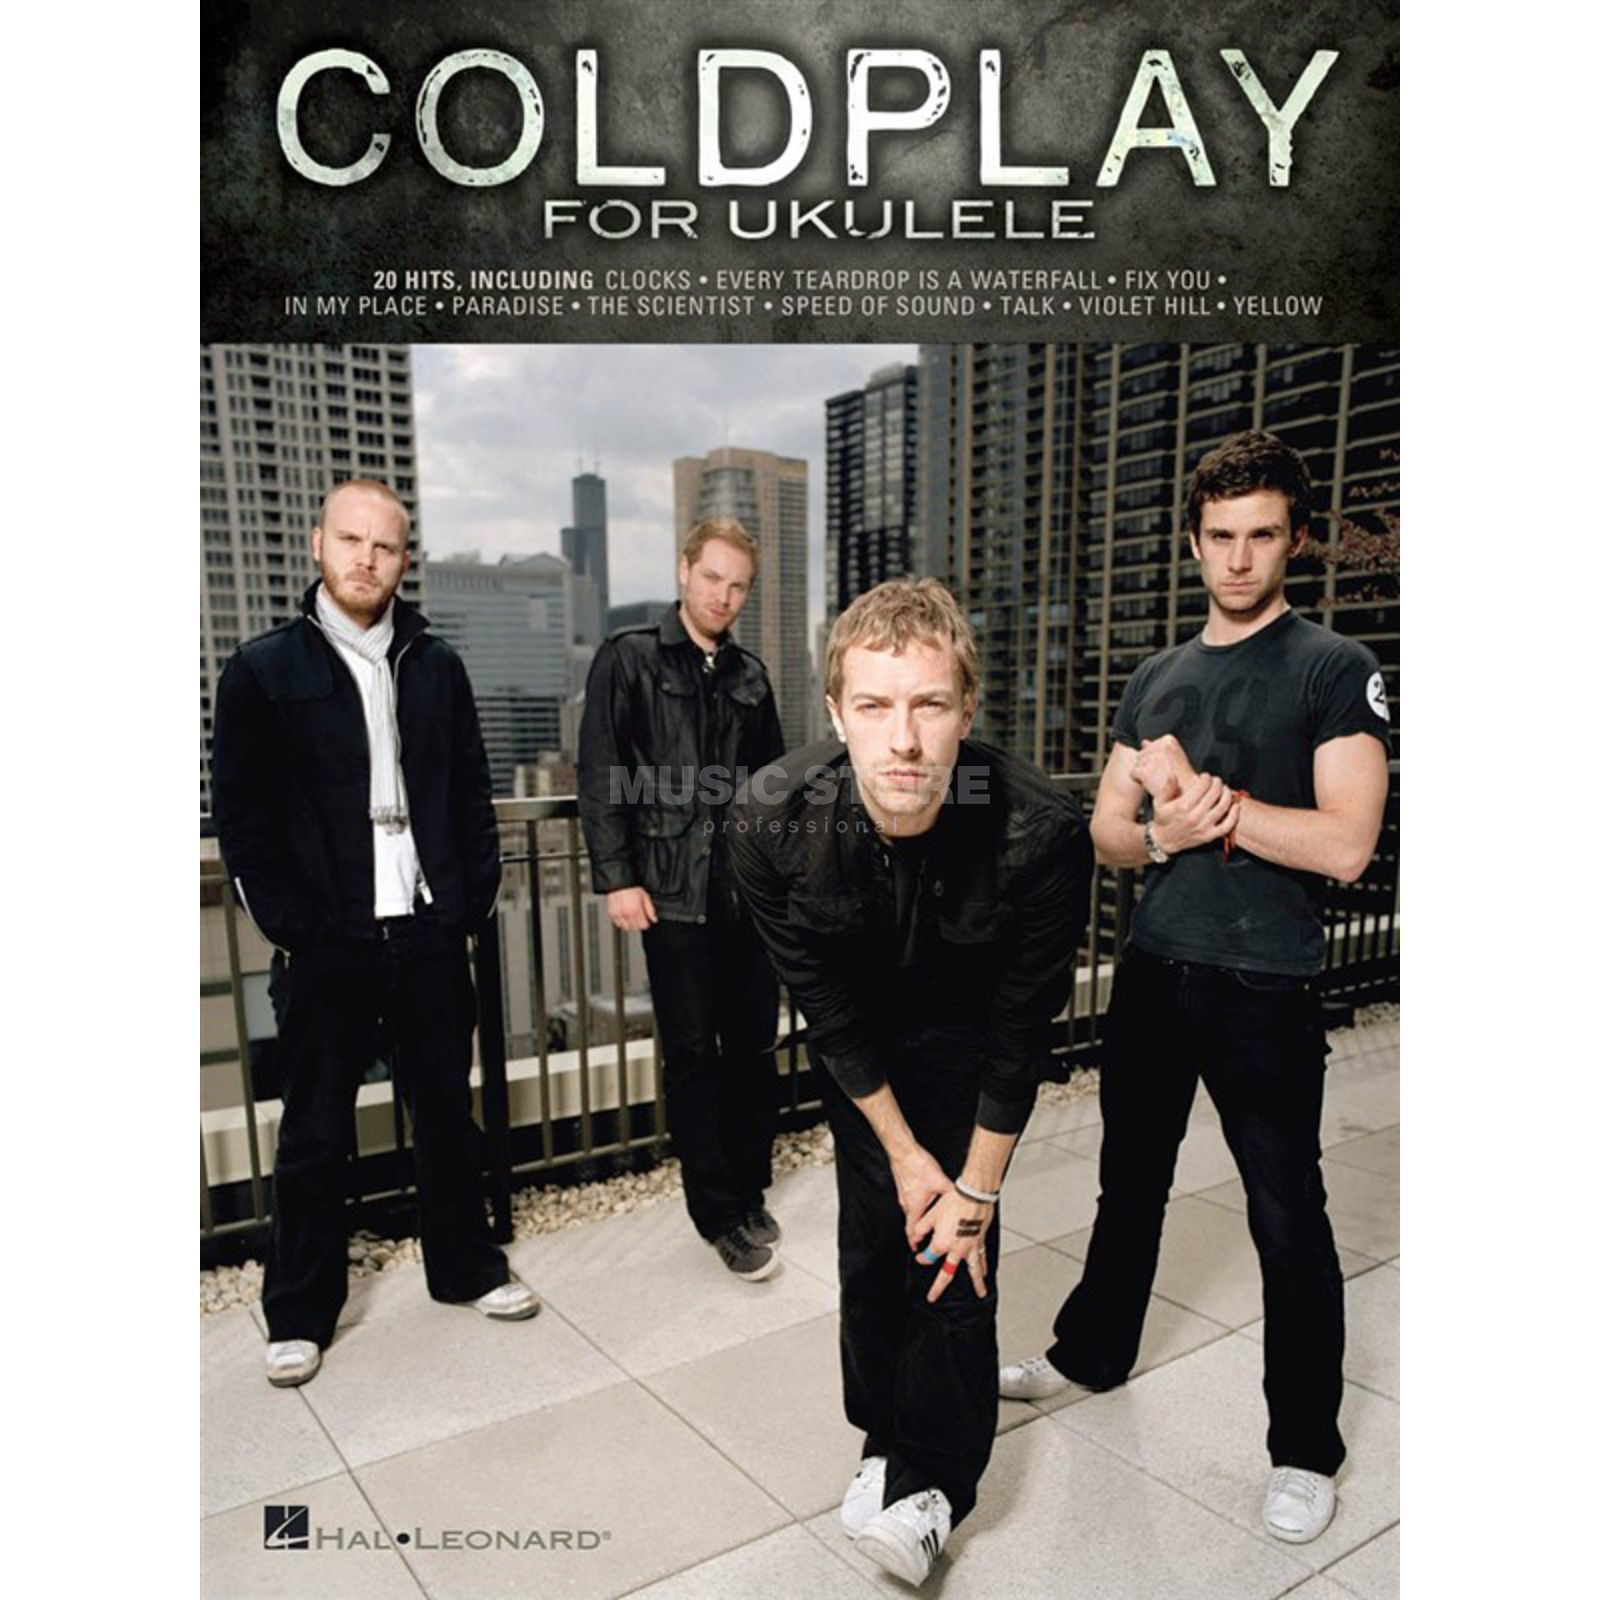 Hal Leonard Coldplay for Ukulele Produktbillede